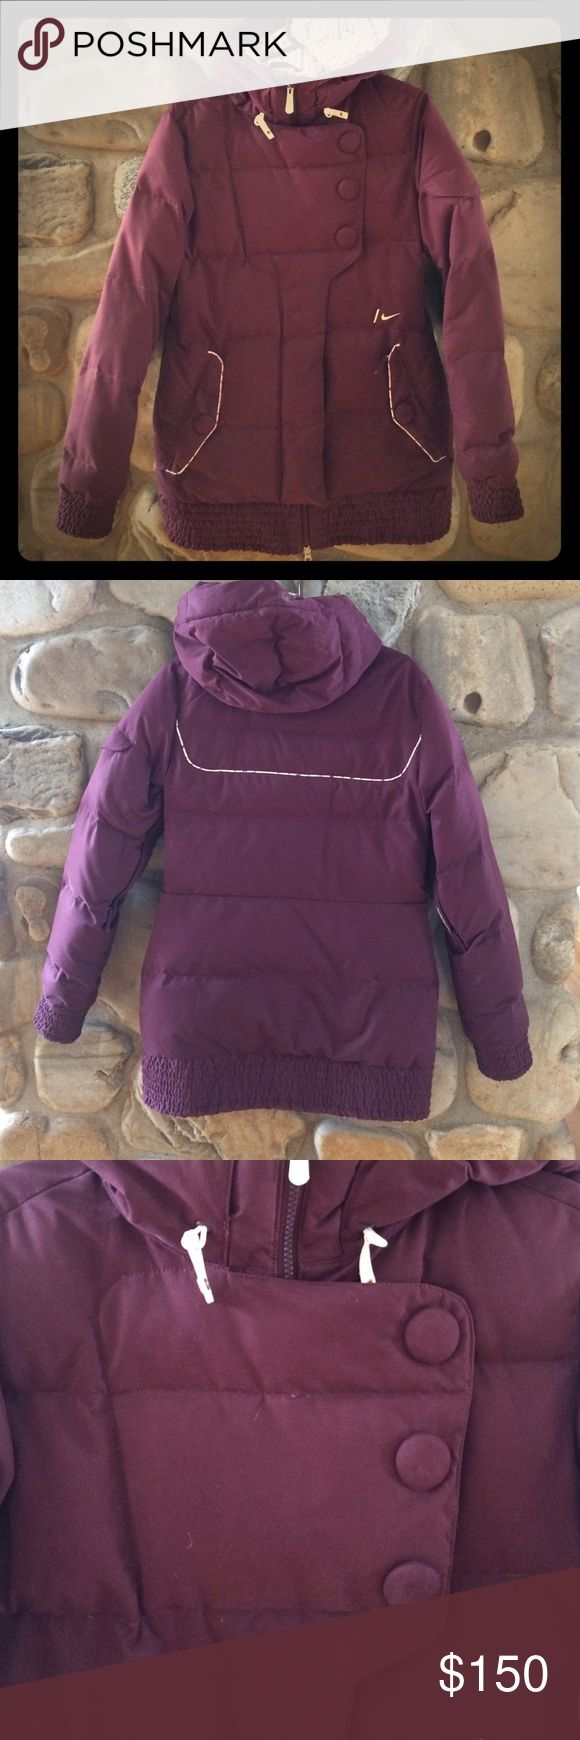 Nike Snowboarding Jacket Women's Nike Plush Purple Snowboarding Jacket with with flowery trim. Multiple pockets for riding and extremely warm!!!! Nike Jackets & Coats Utility Jackets